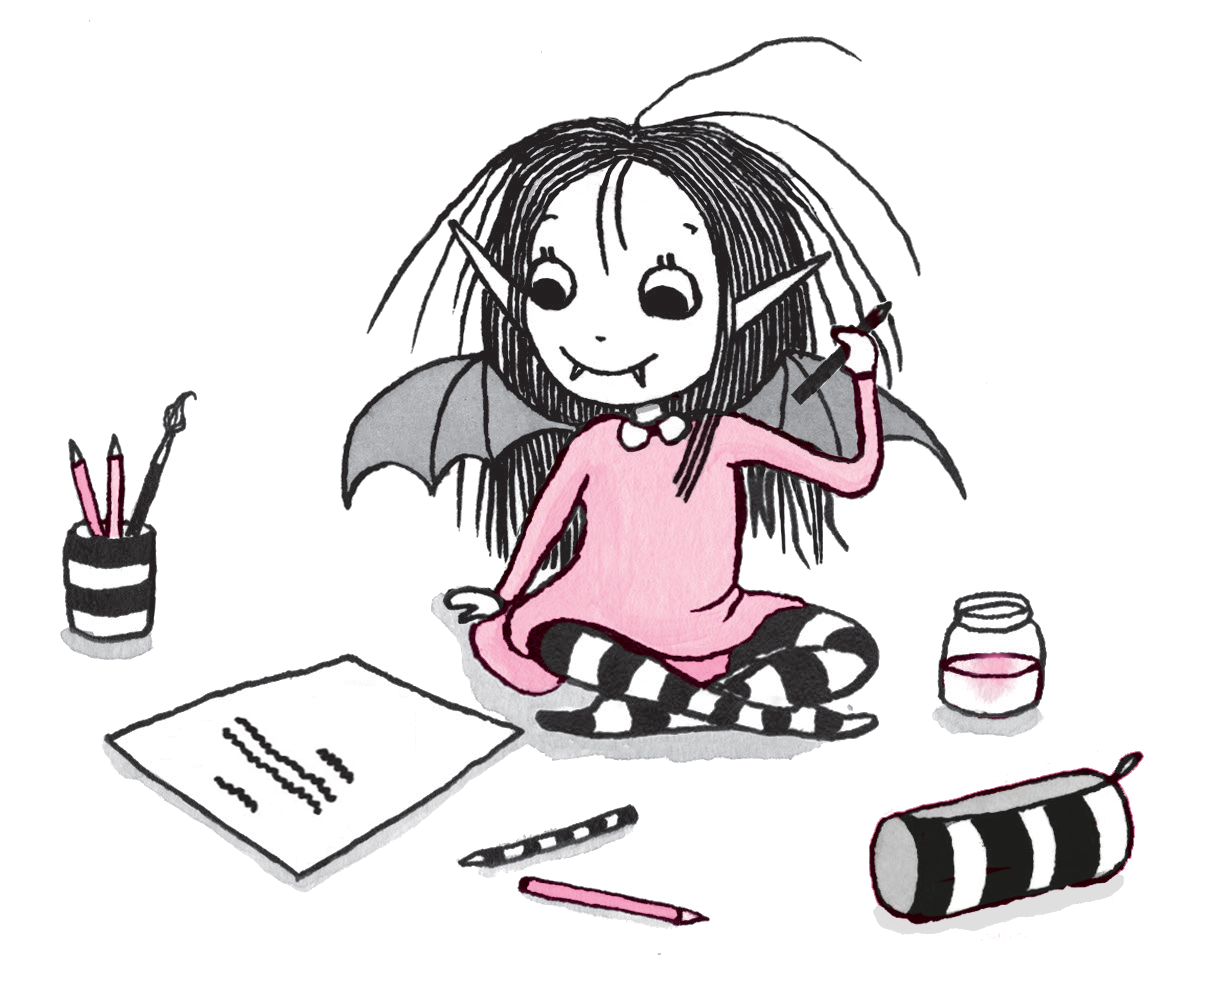 Start your own magical. Clipart writing story writing